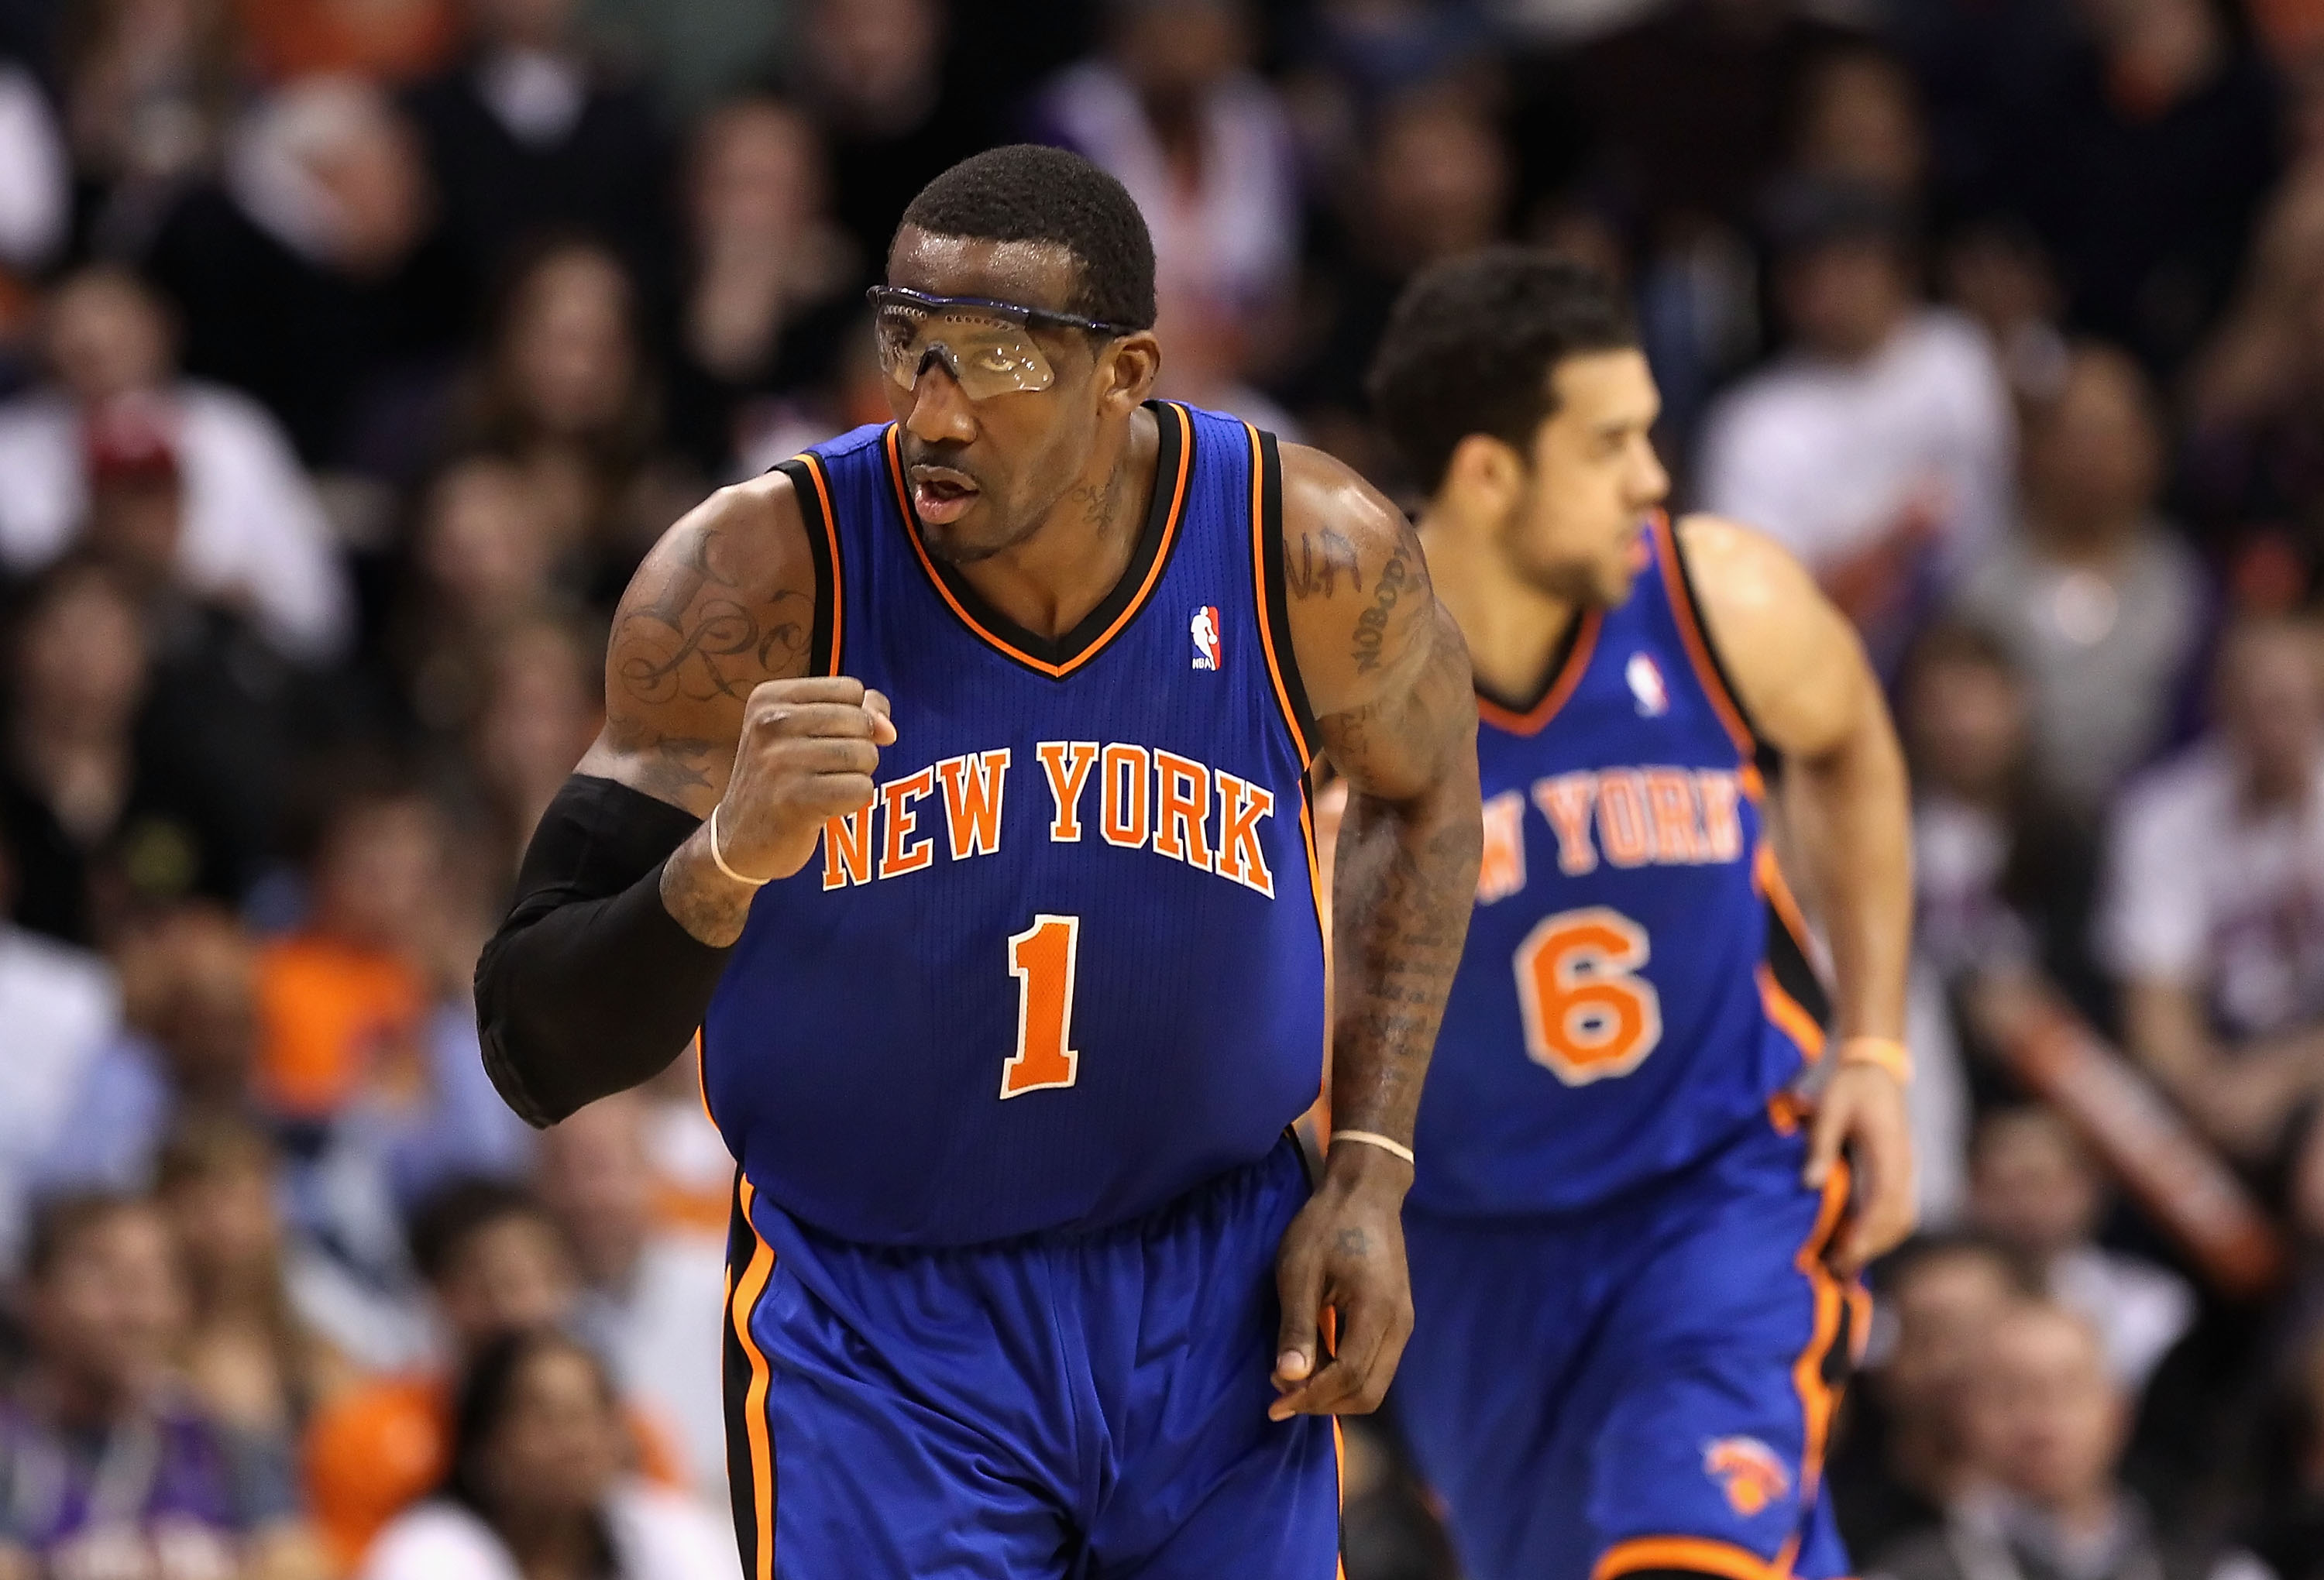 PHOENIX - JANUARY 07:  Amar'e Stoudemire #1 of the New York Knicks pumps his fist after Landry Fields #6 hit a three point shot against the Phoenix Suns during the NBA game at US Airways Center on January 7, 2011 in Phoenix, Arizona.  The Knicks defeated